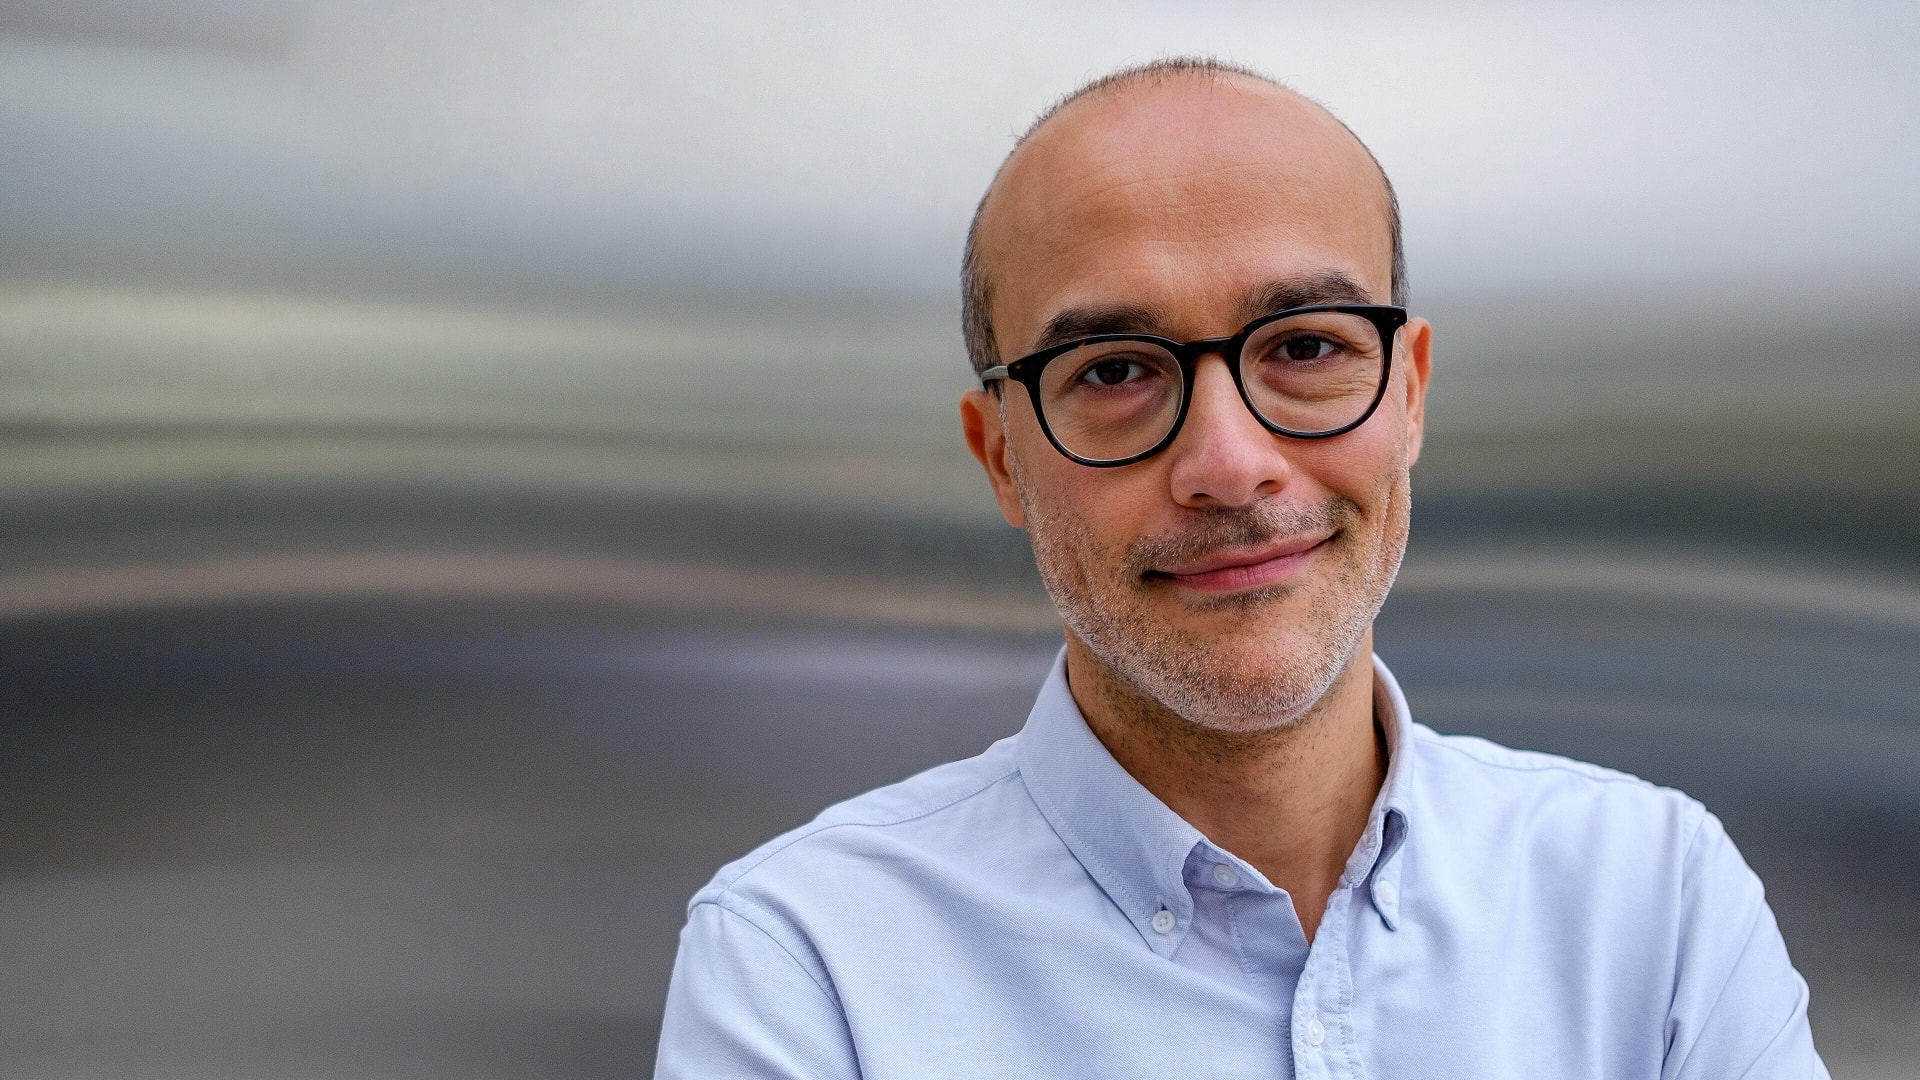 Photo of Orcun Gogus, Creative Director for Wunderman Thompson Apps